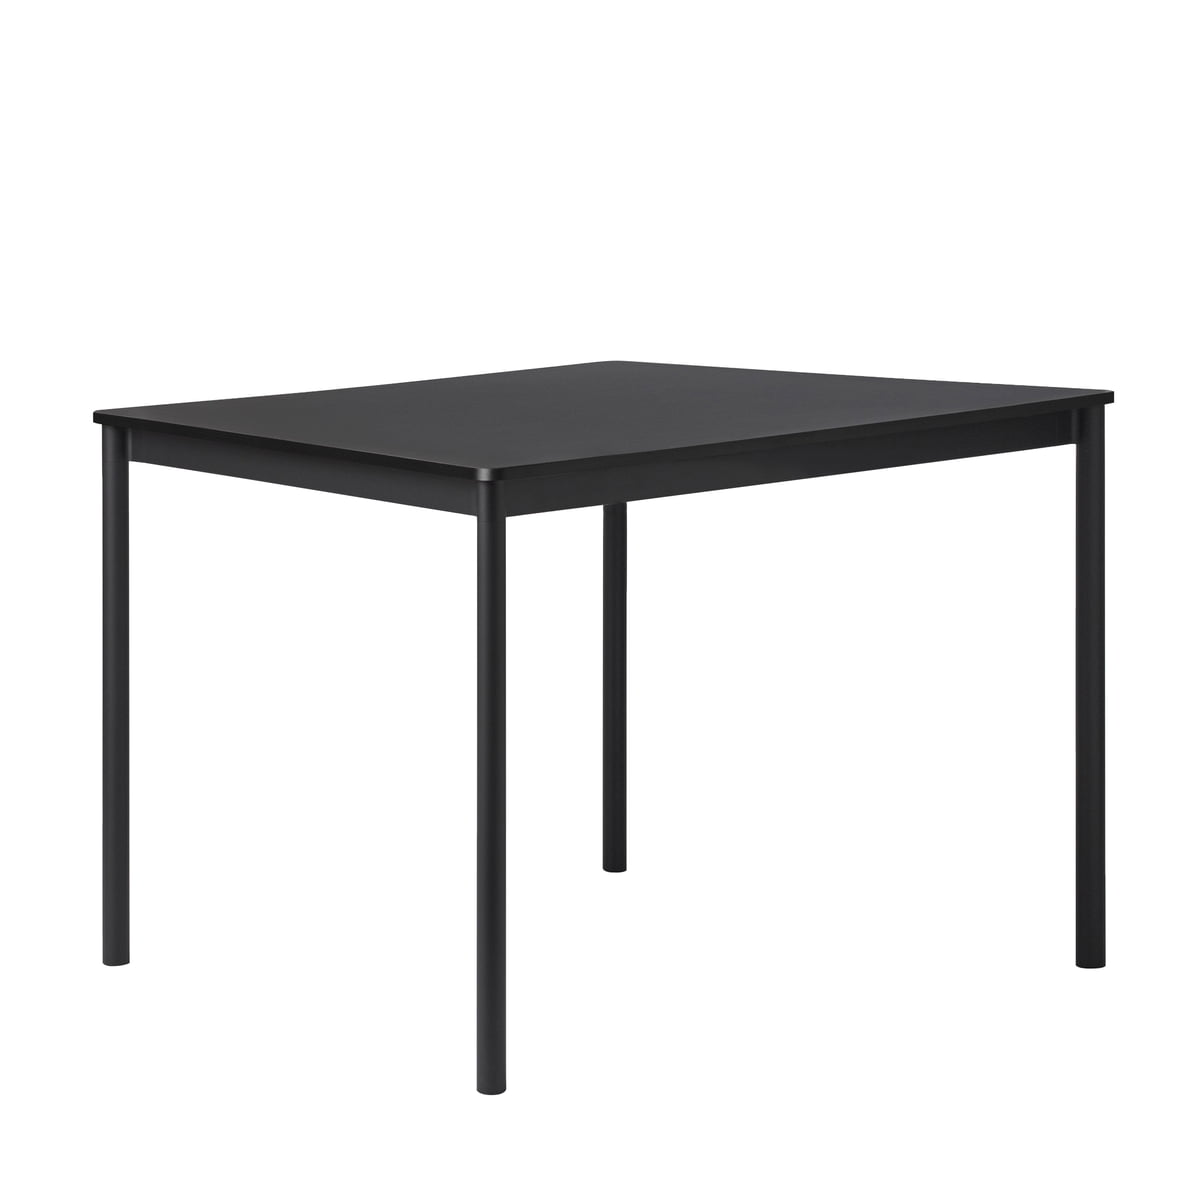 base table von muuto 140 x 80 cm im shop. Black Bedroom Furniture Sets. Home Design Ideas